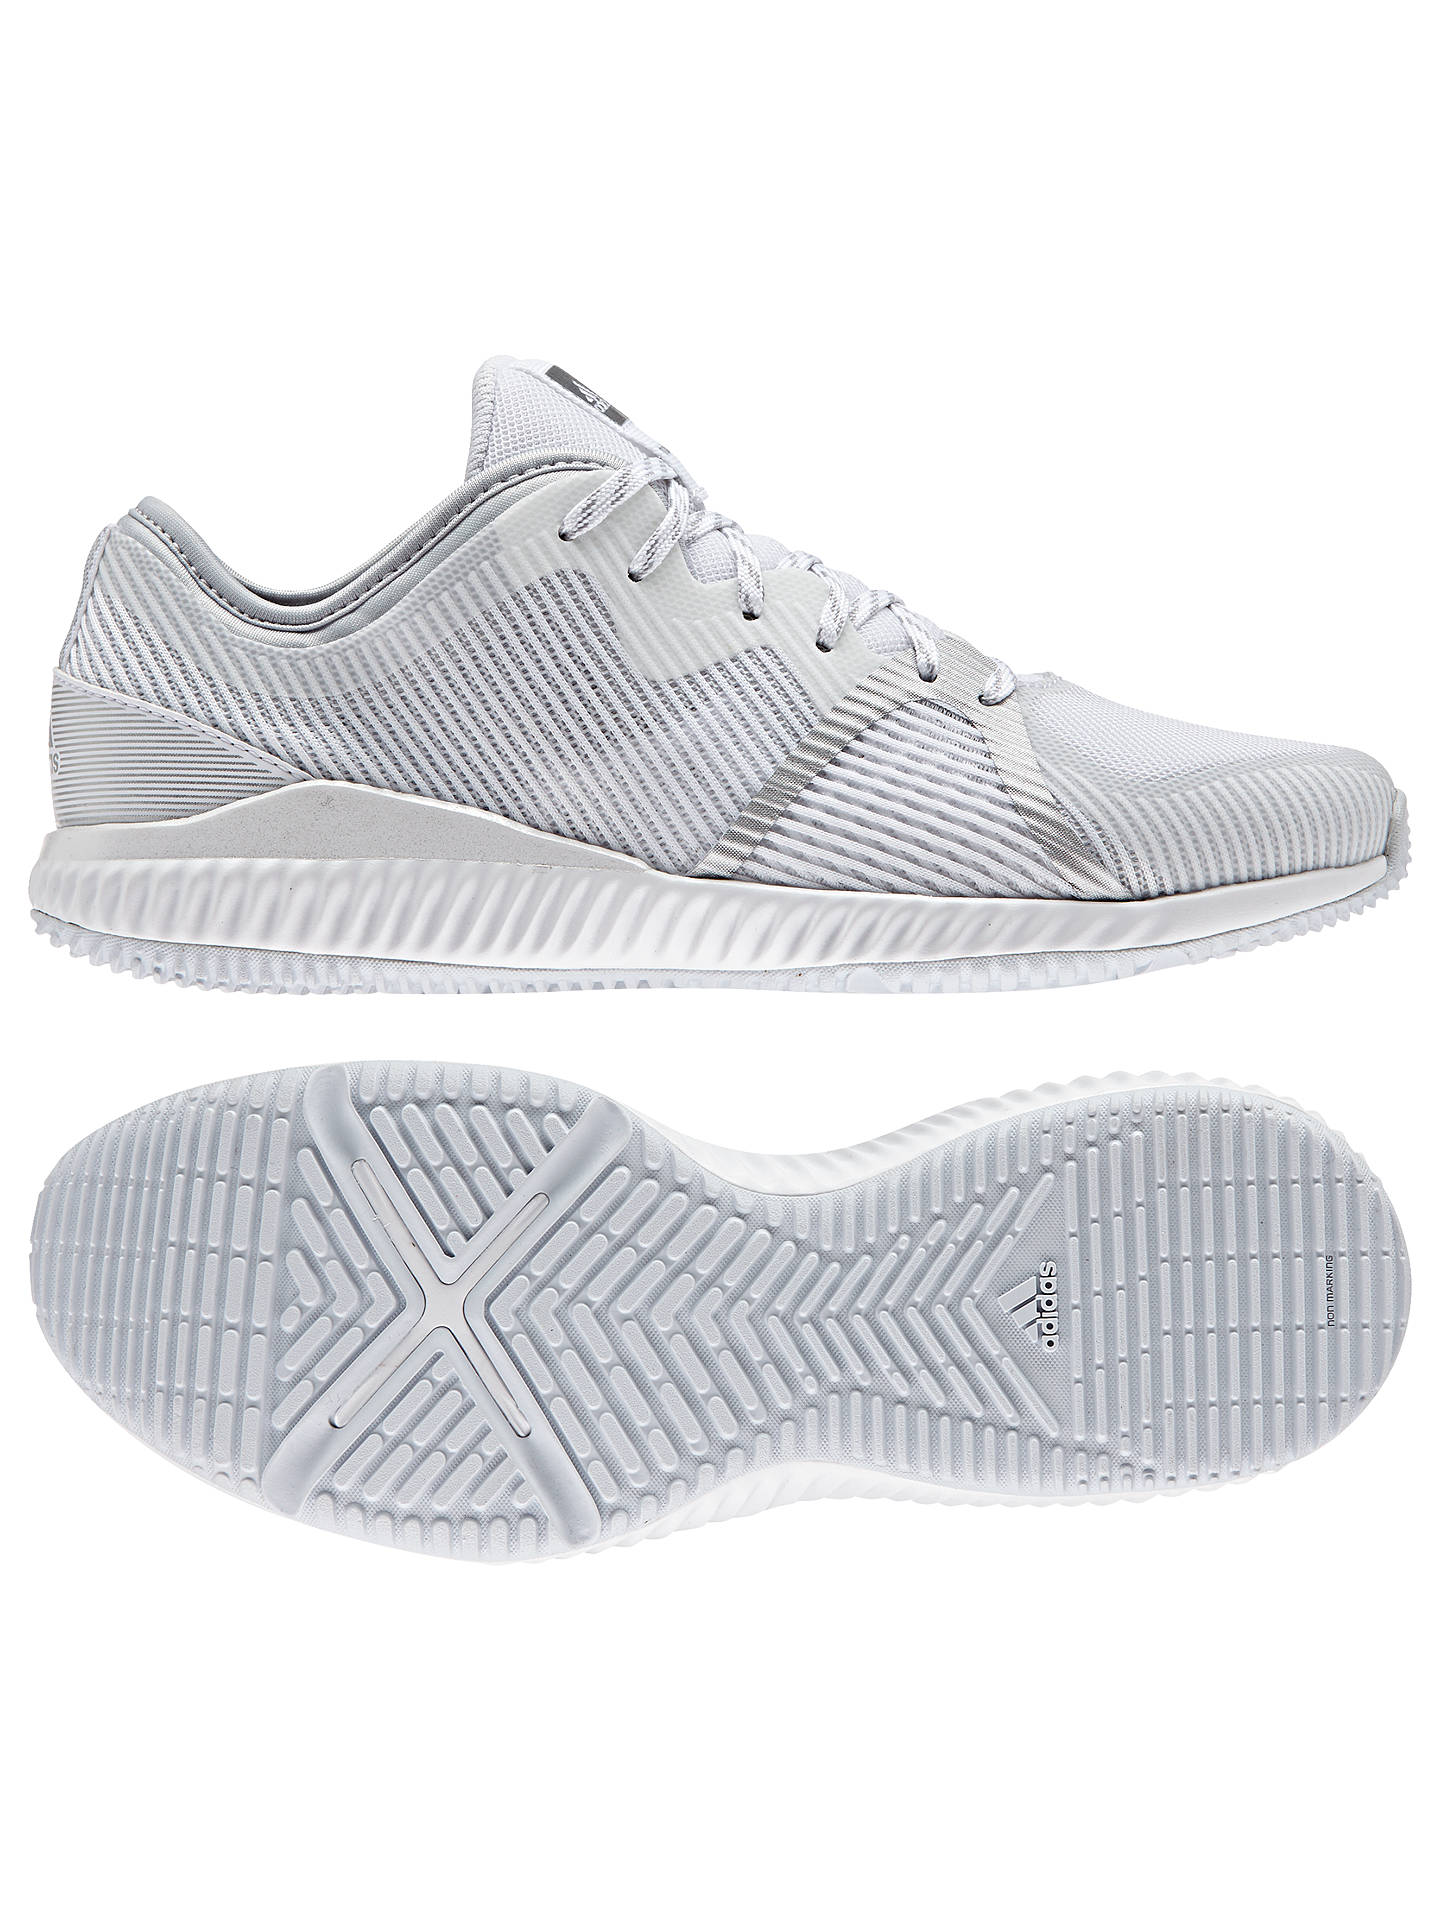 013fee2c7dcdc ... Buy Adidas CrazyTrain Bounce Women s Cross Trainers